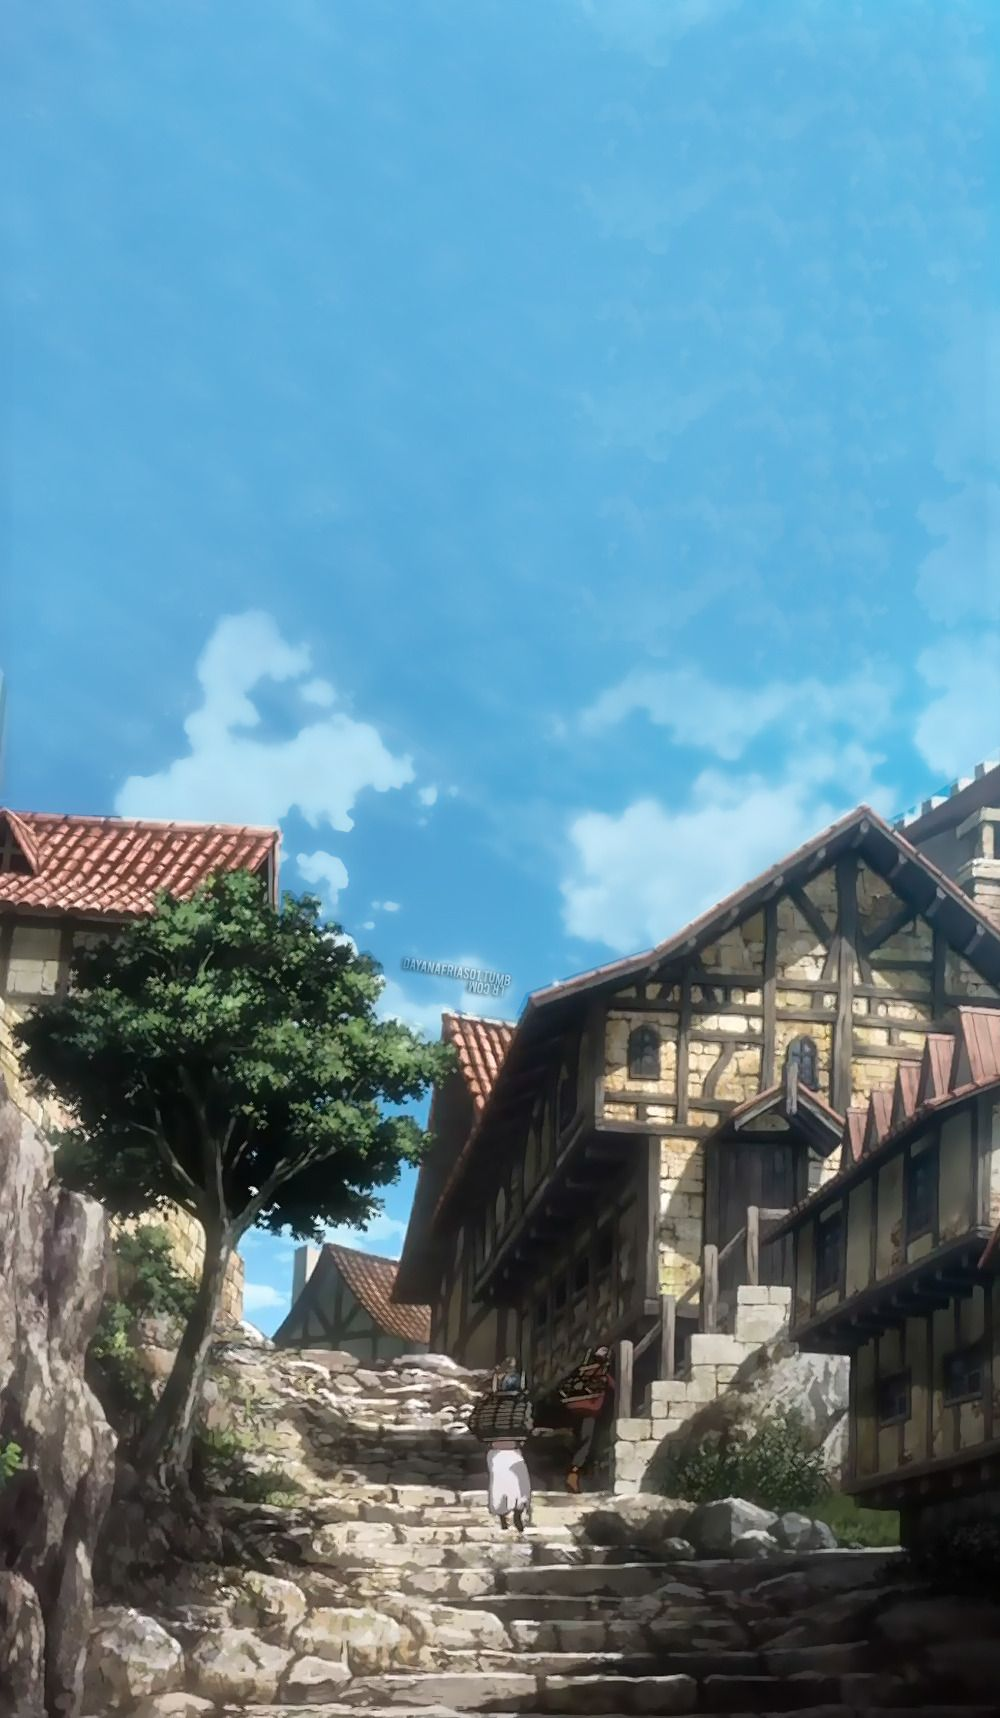 Attack On Titan Scenery Posted By Ryan Thompson